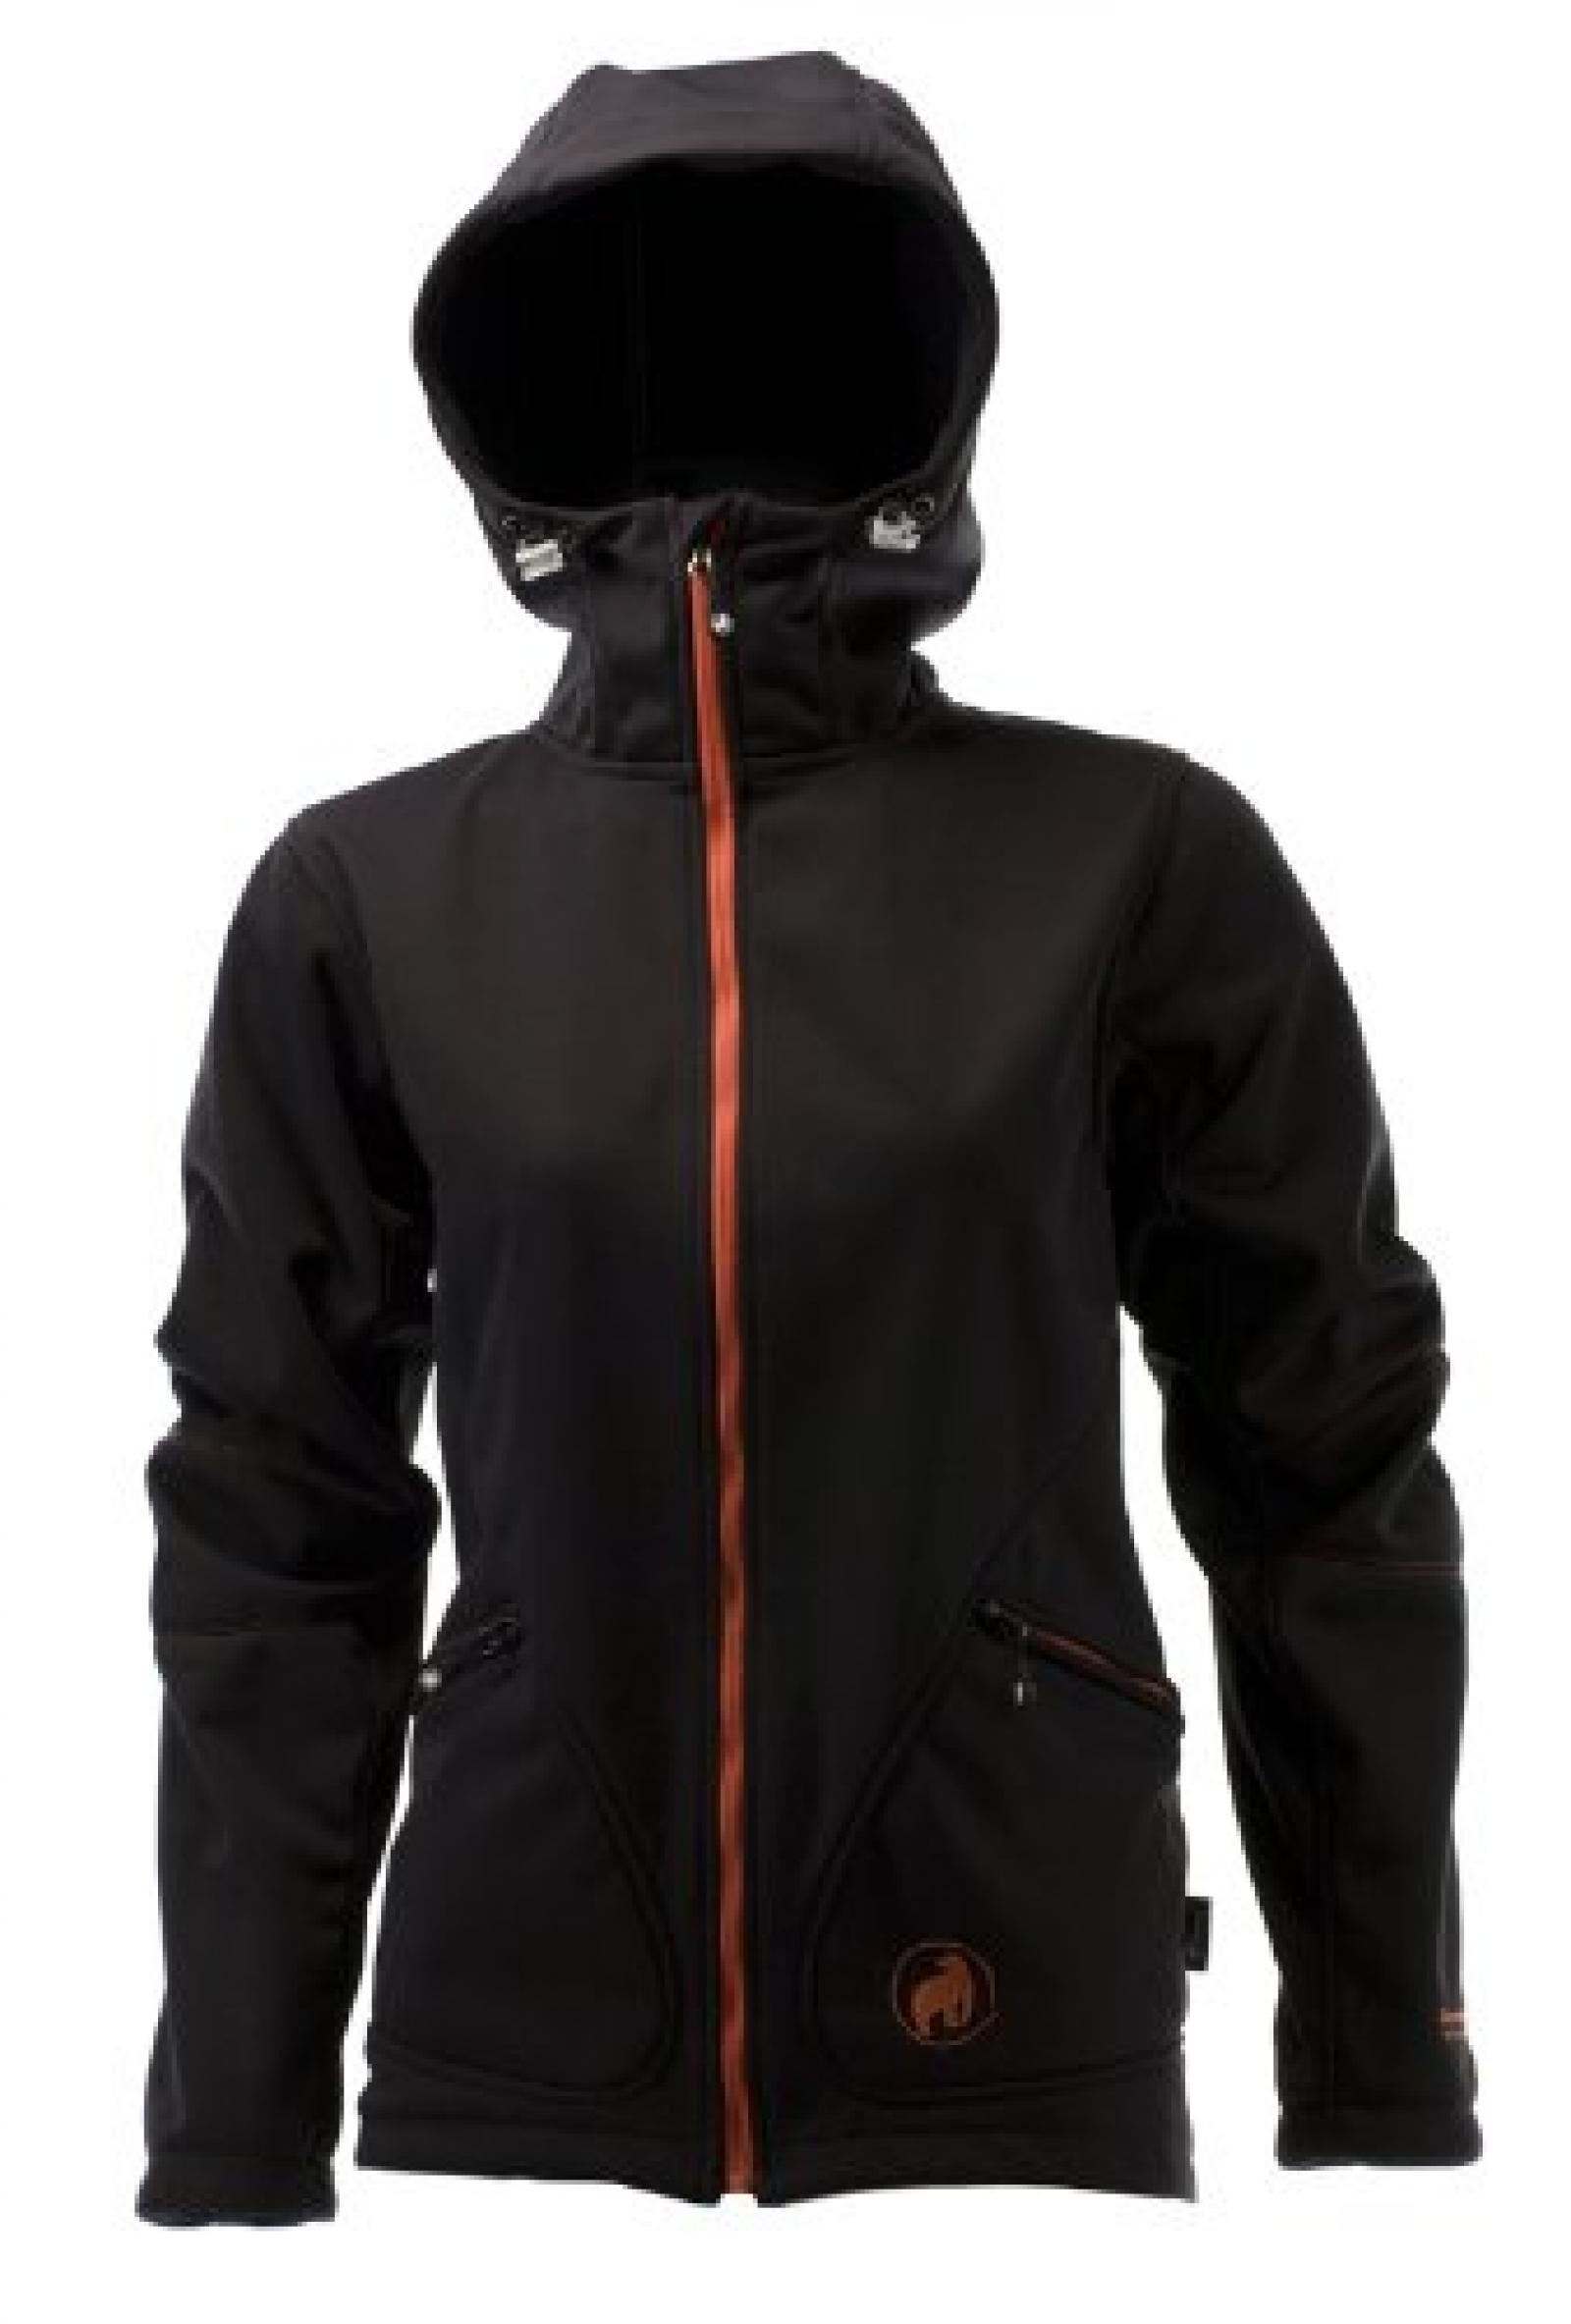 Local Softshell Jacket Women Berry black 2012